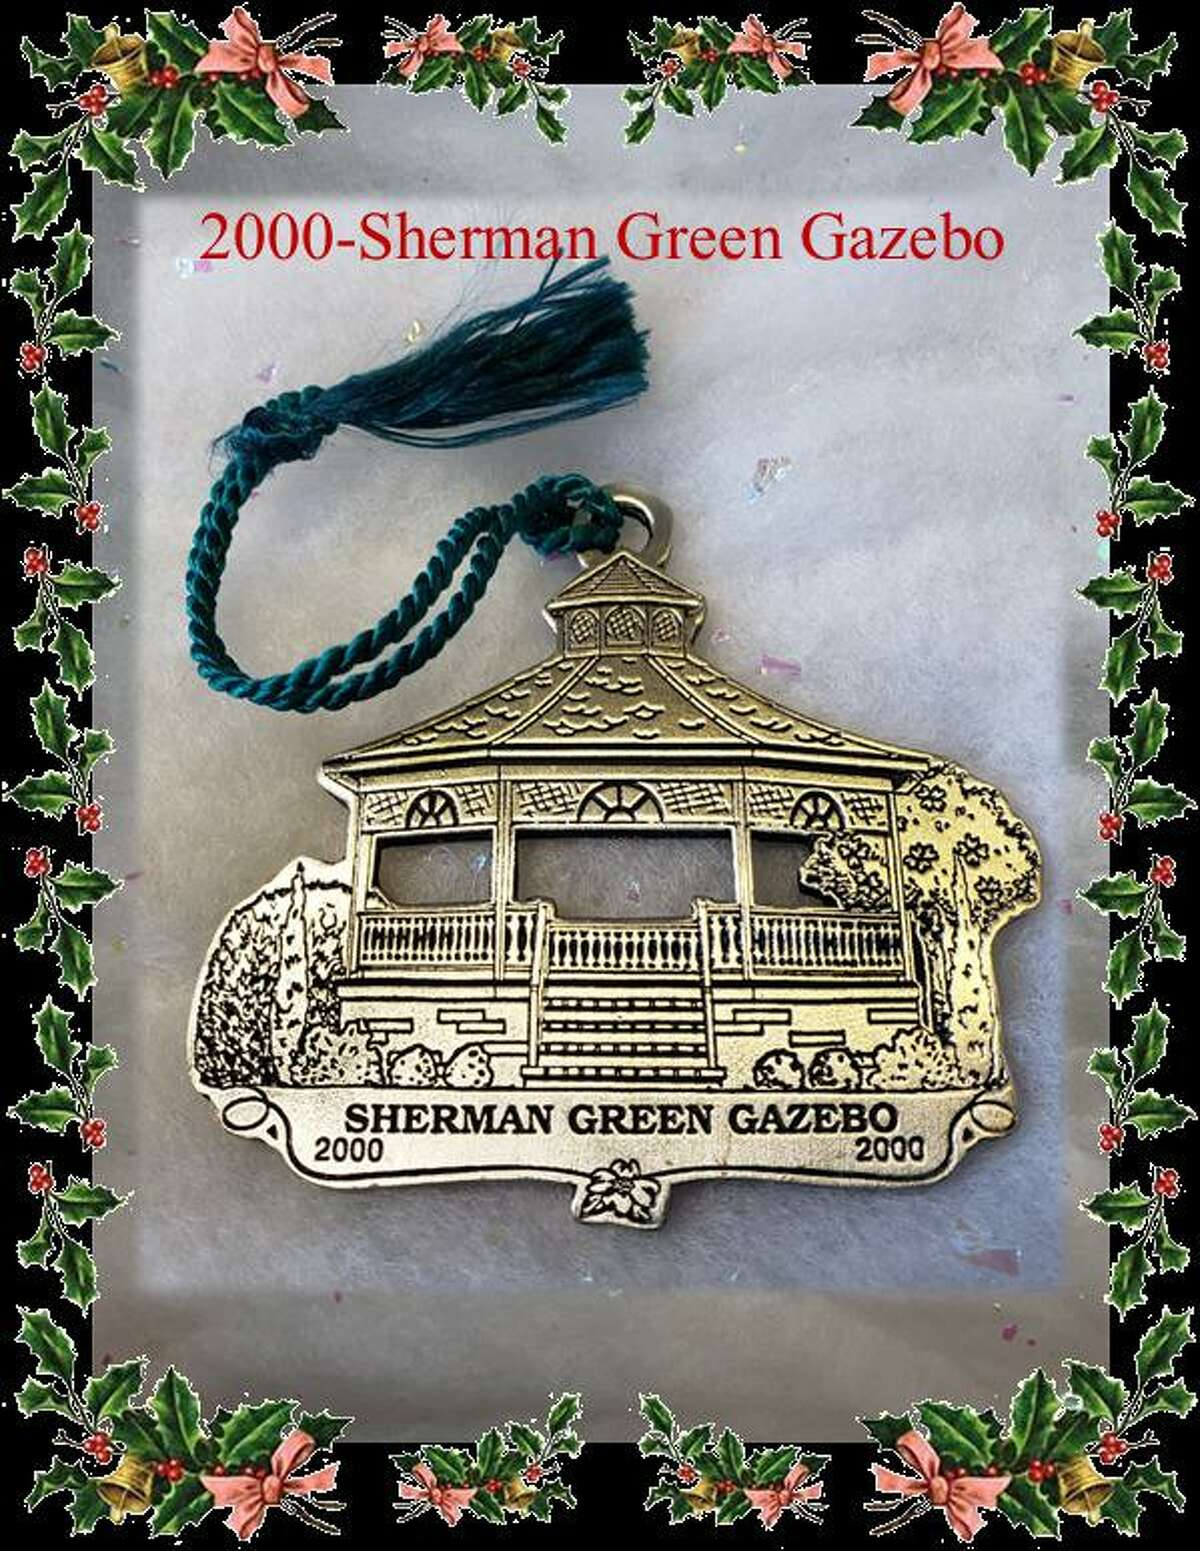 Six different Holiday ornaments from the company Woodbury Pewter, and of historic landmark buildings in Fairfield are available for purchase from the Fairfield Chamber of Commerce. The ornaments are $20 each, or $100 for a set of six ornaments. Pictured is one of the ornaments, the 2000 Sherman Green Gazebo.